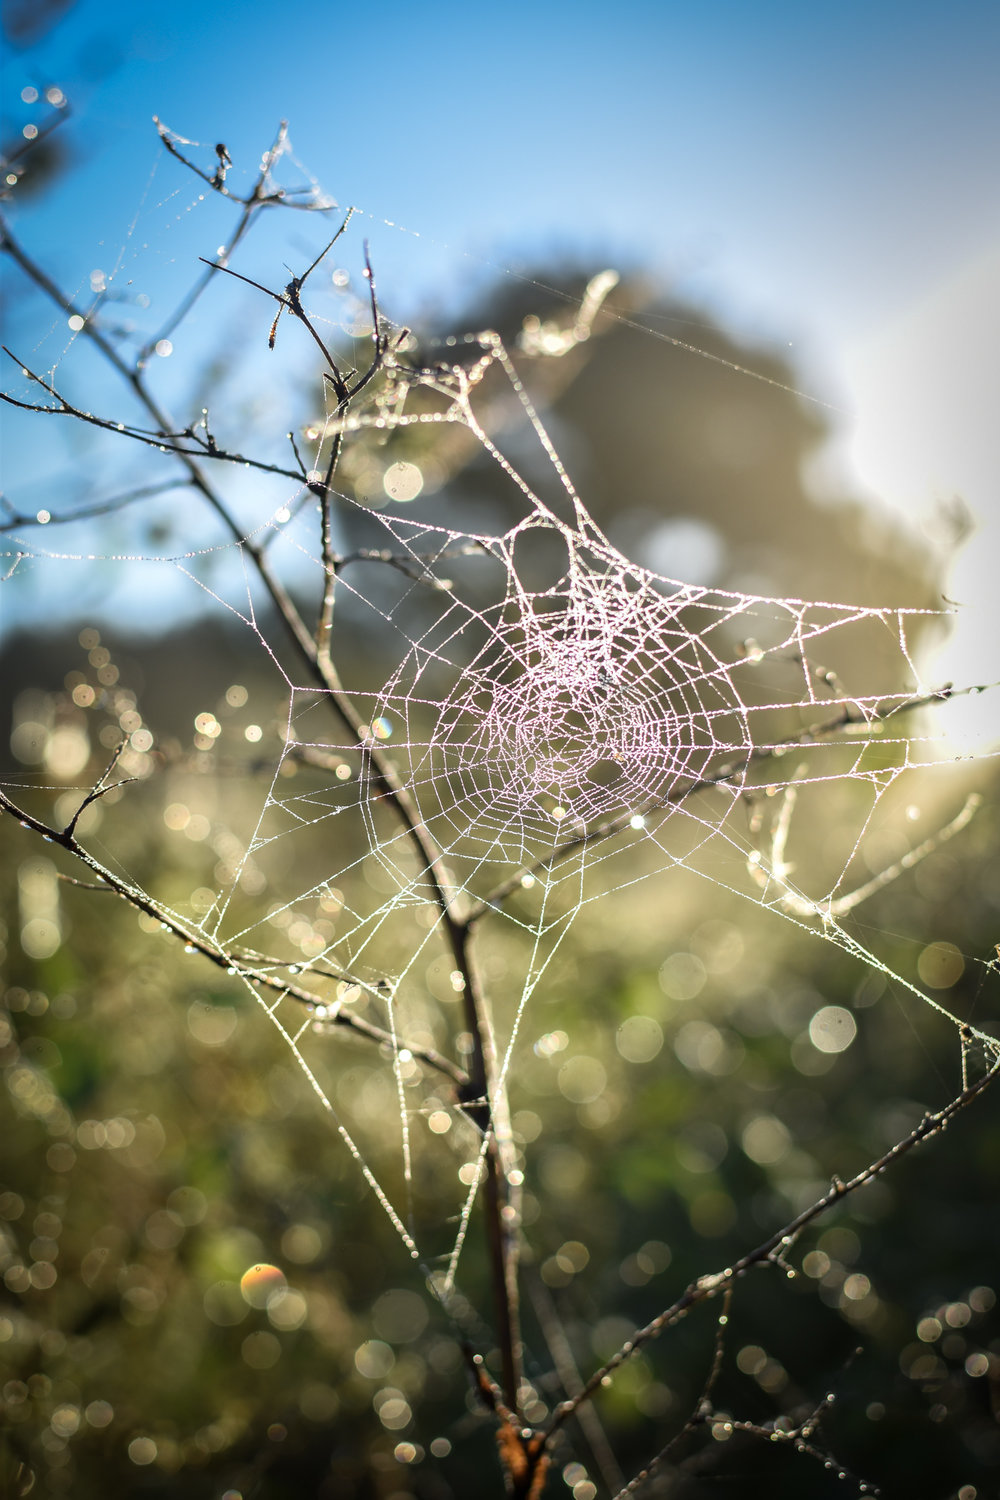 Beautiful spider webs in the sun